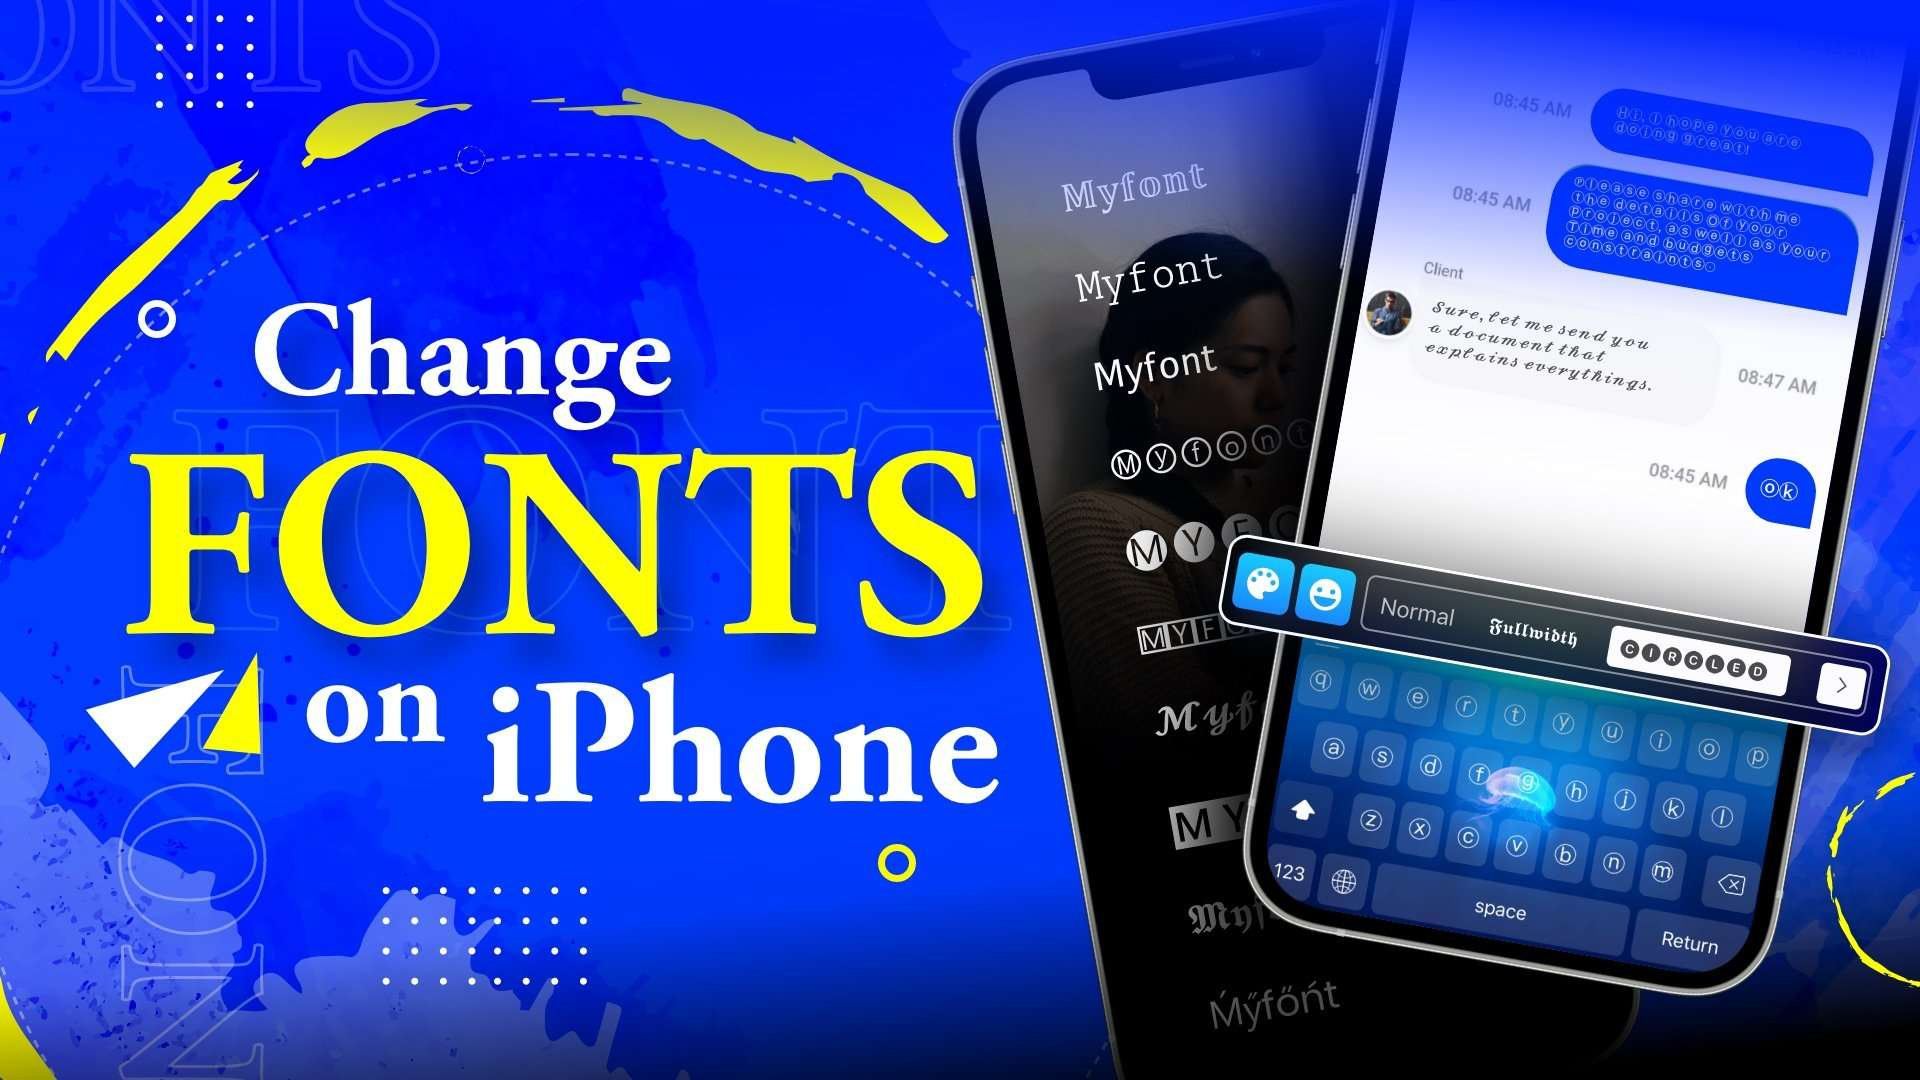 How to change font on iPhone